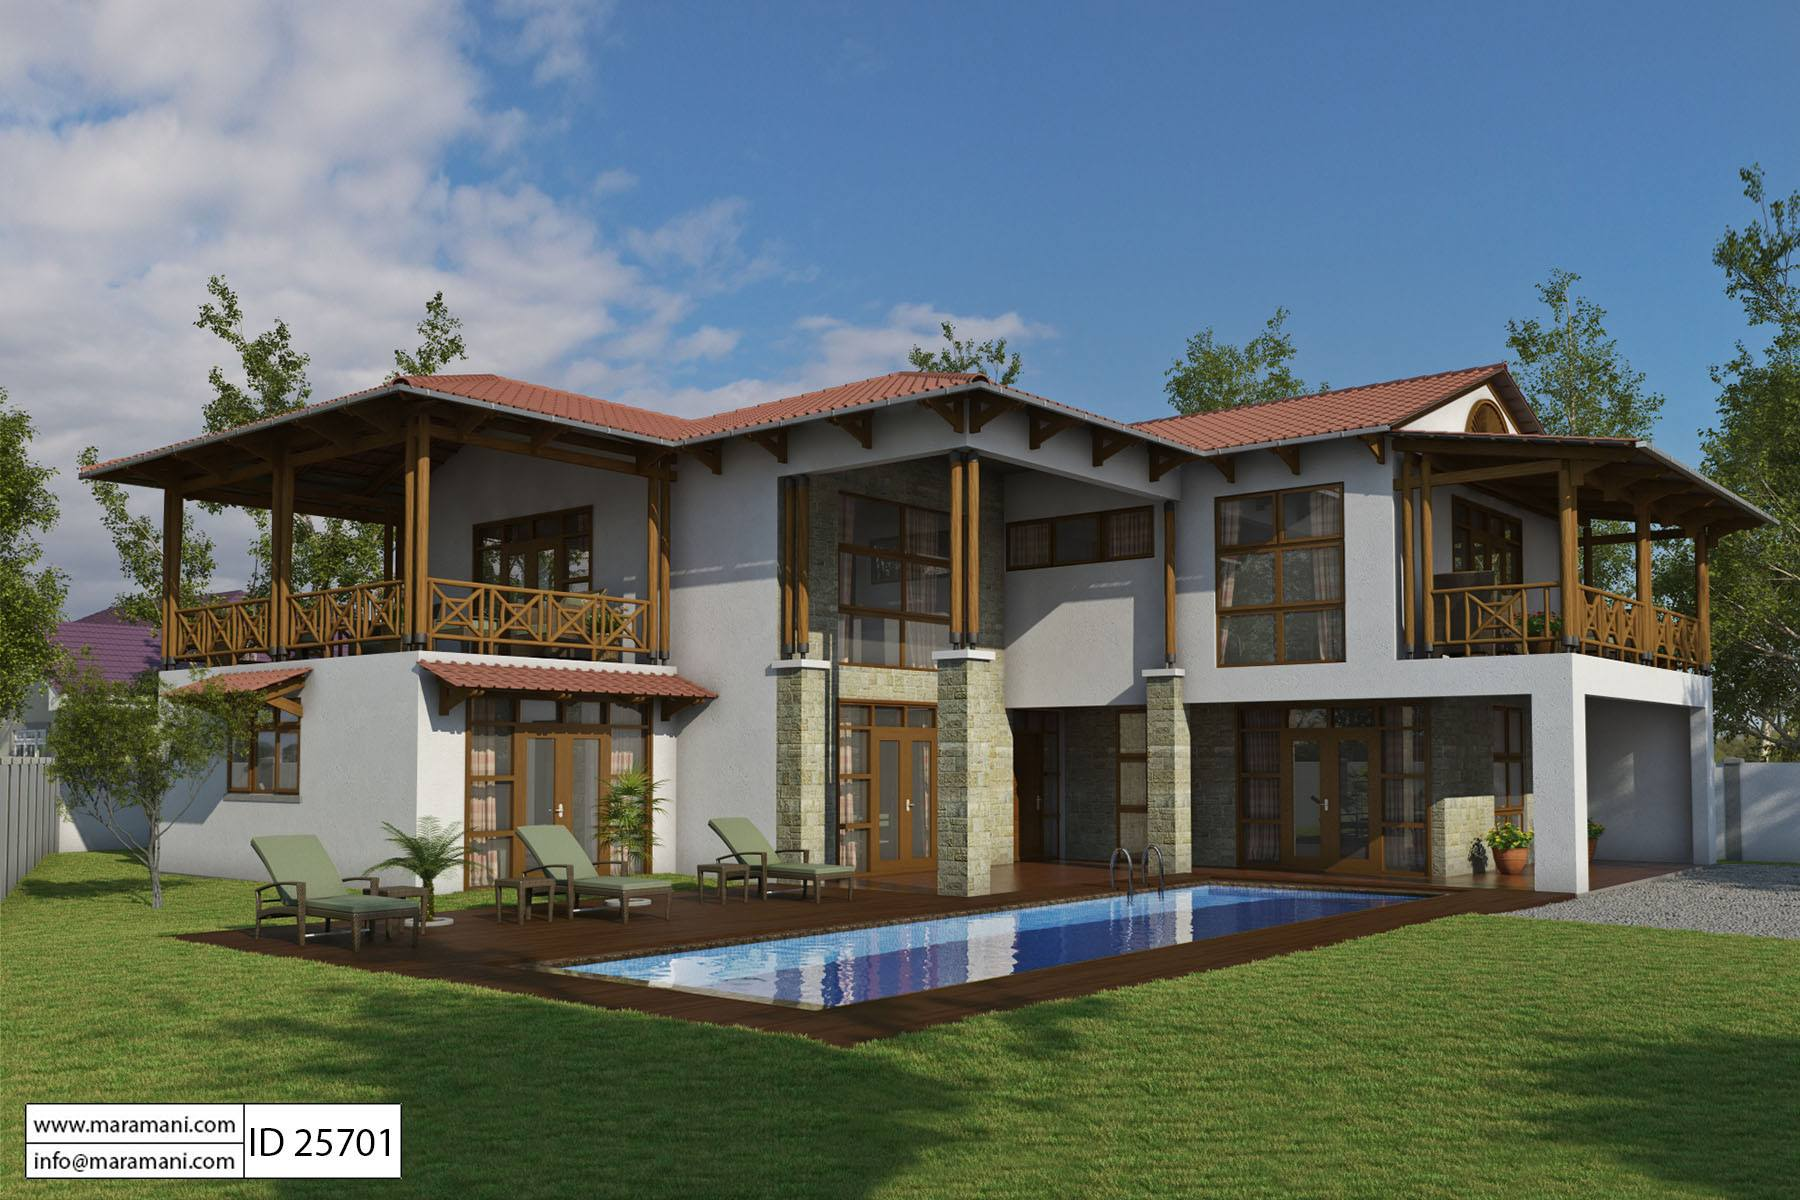 Bali style house with 5 bedrooms id 25701 house plans for Five bedroom house